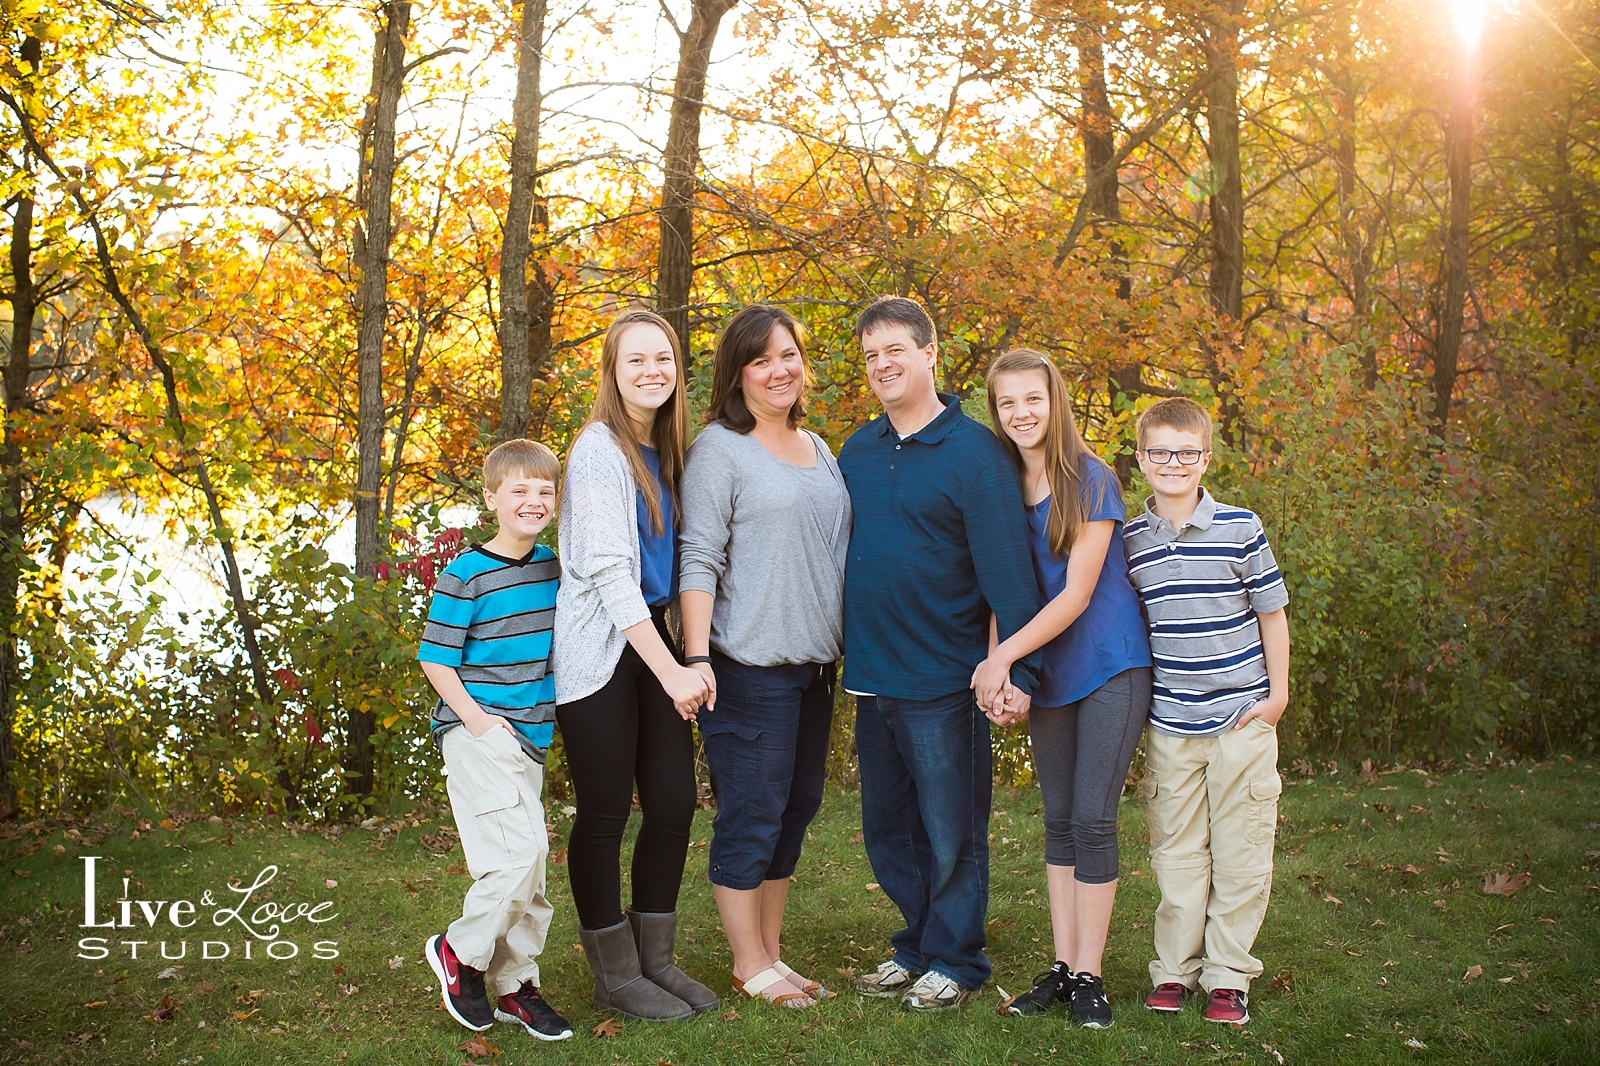 eagan-mn-family-photography_0076.jpg